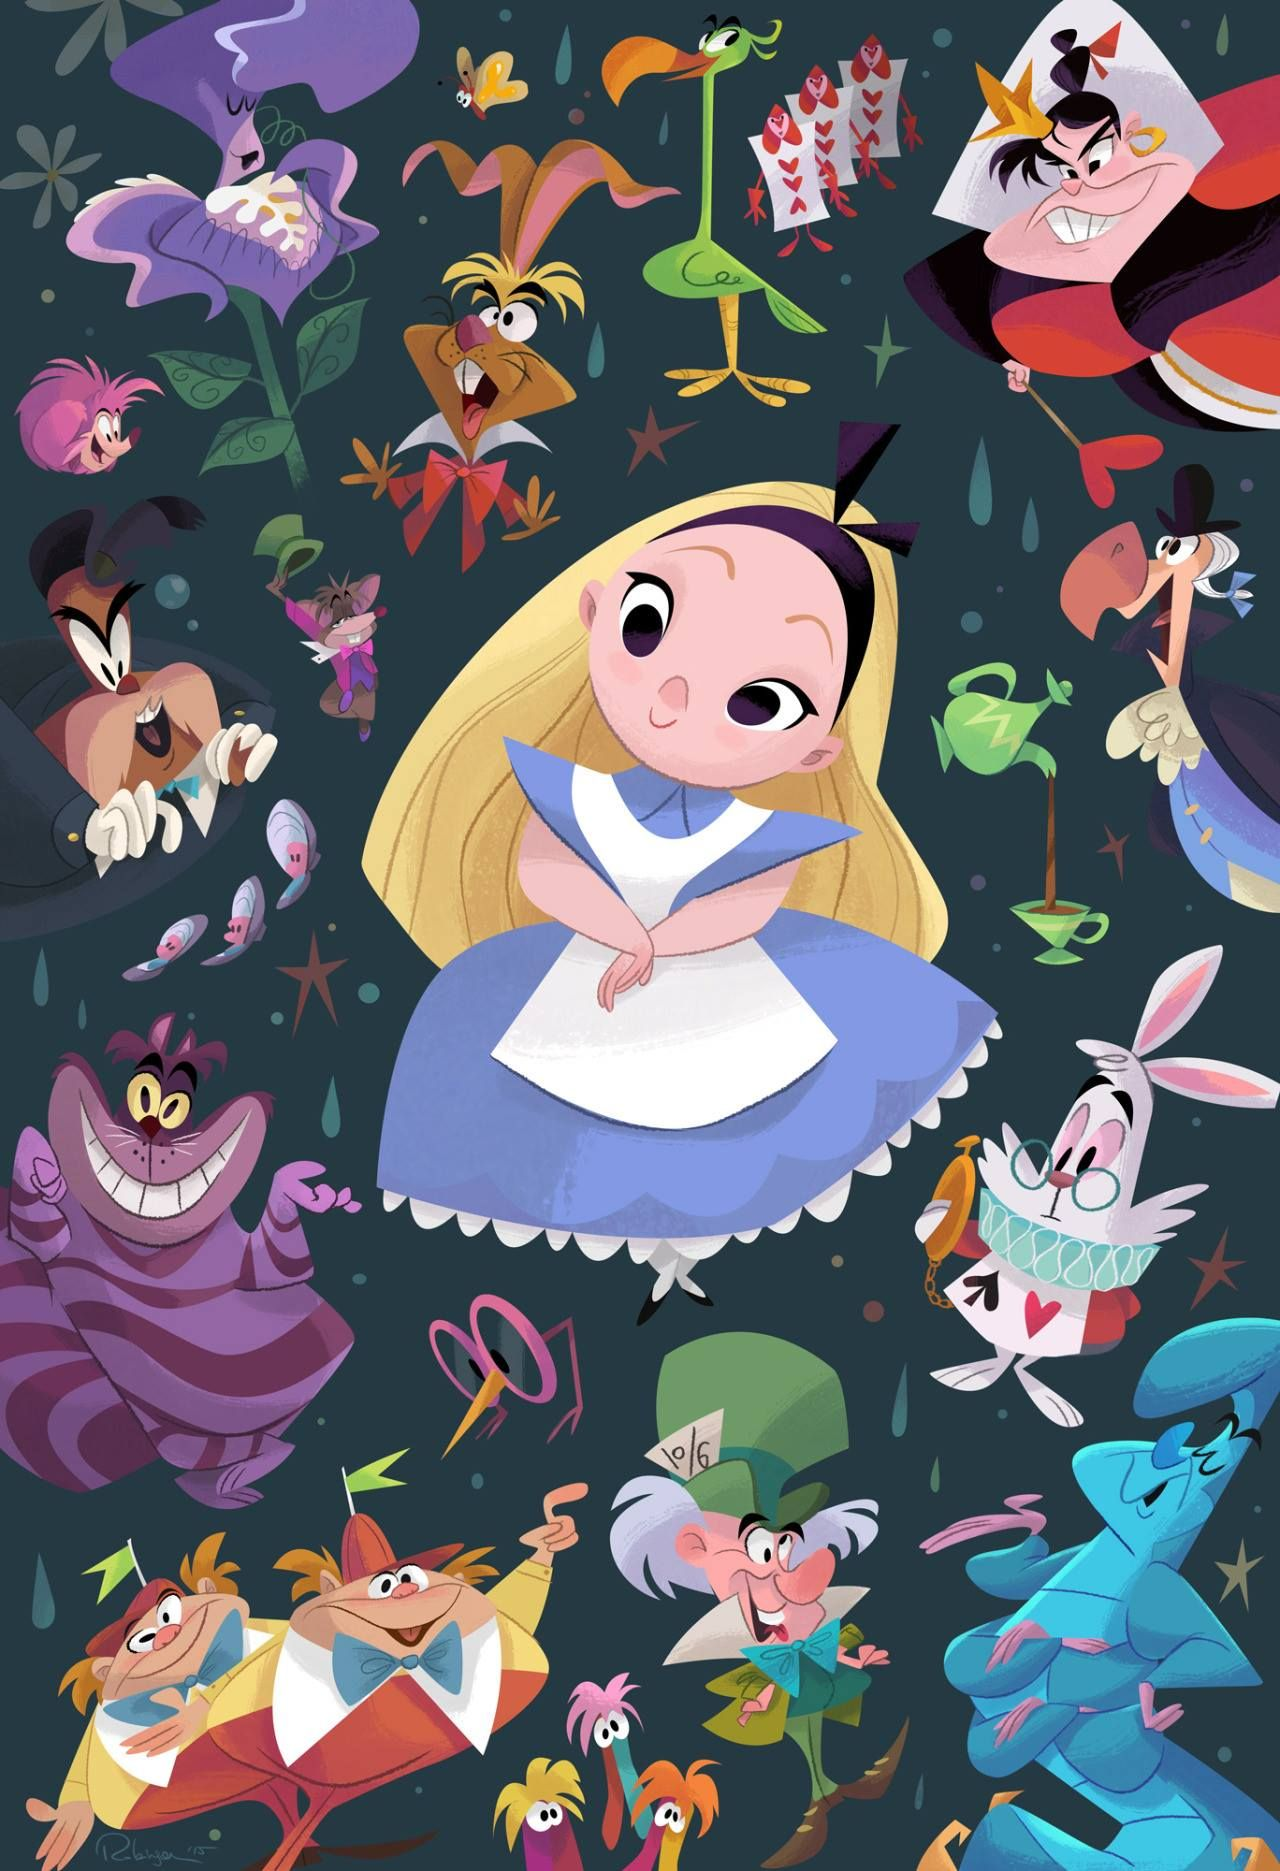 Pin by Zara Magumyan on character design in 2019 | Alice ...